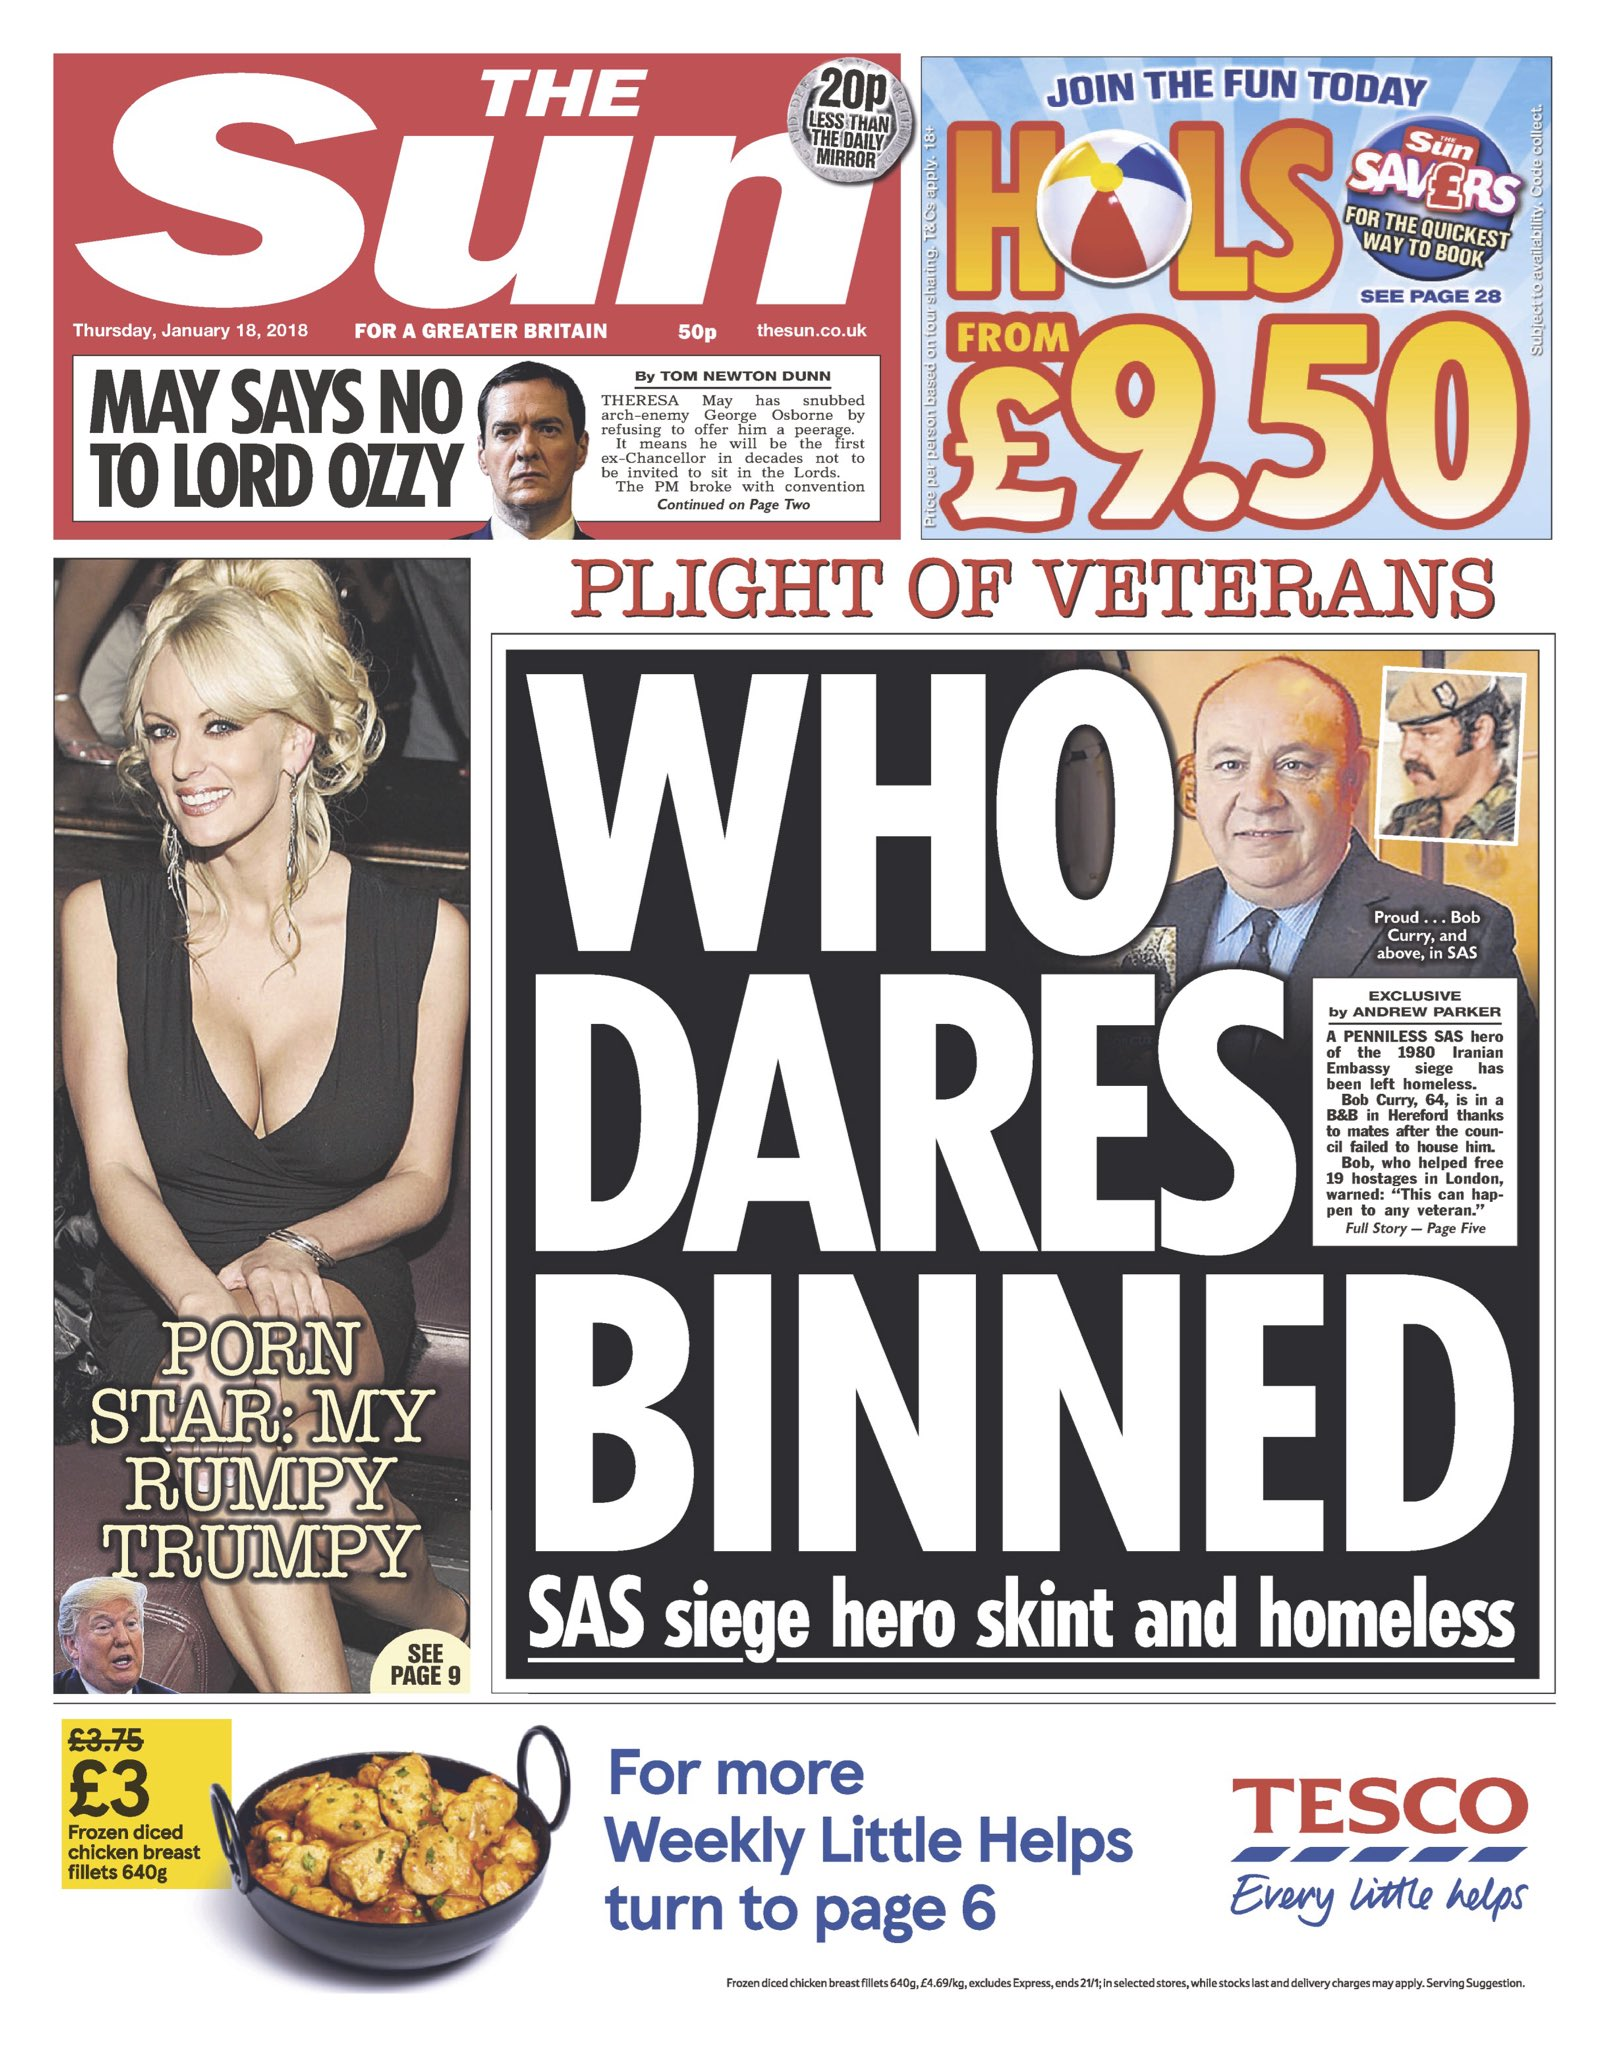 Thursday's Sun 'Who dares binned'   #tomorrowspaperstoday #bbcpapers (via @hendopolis) https://t.co/HzuDeqdR8A